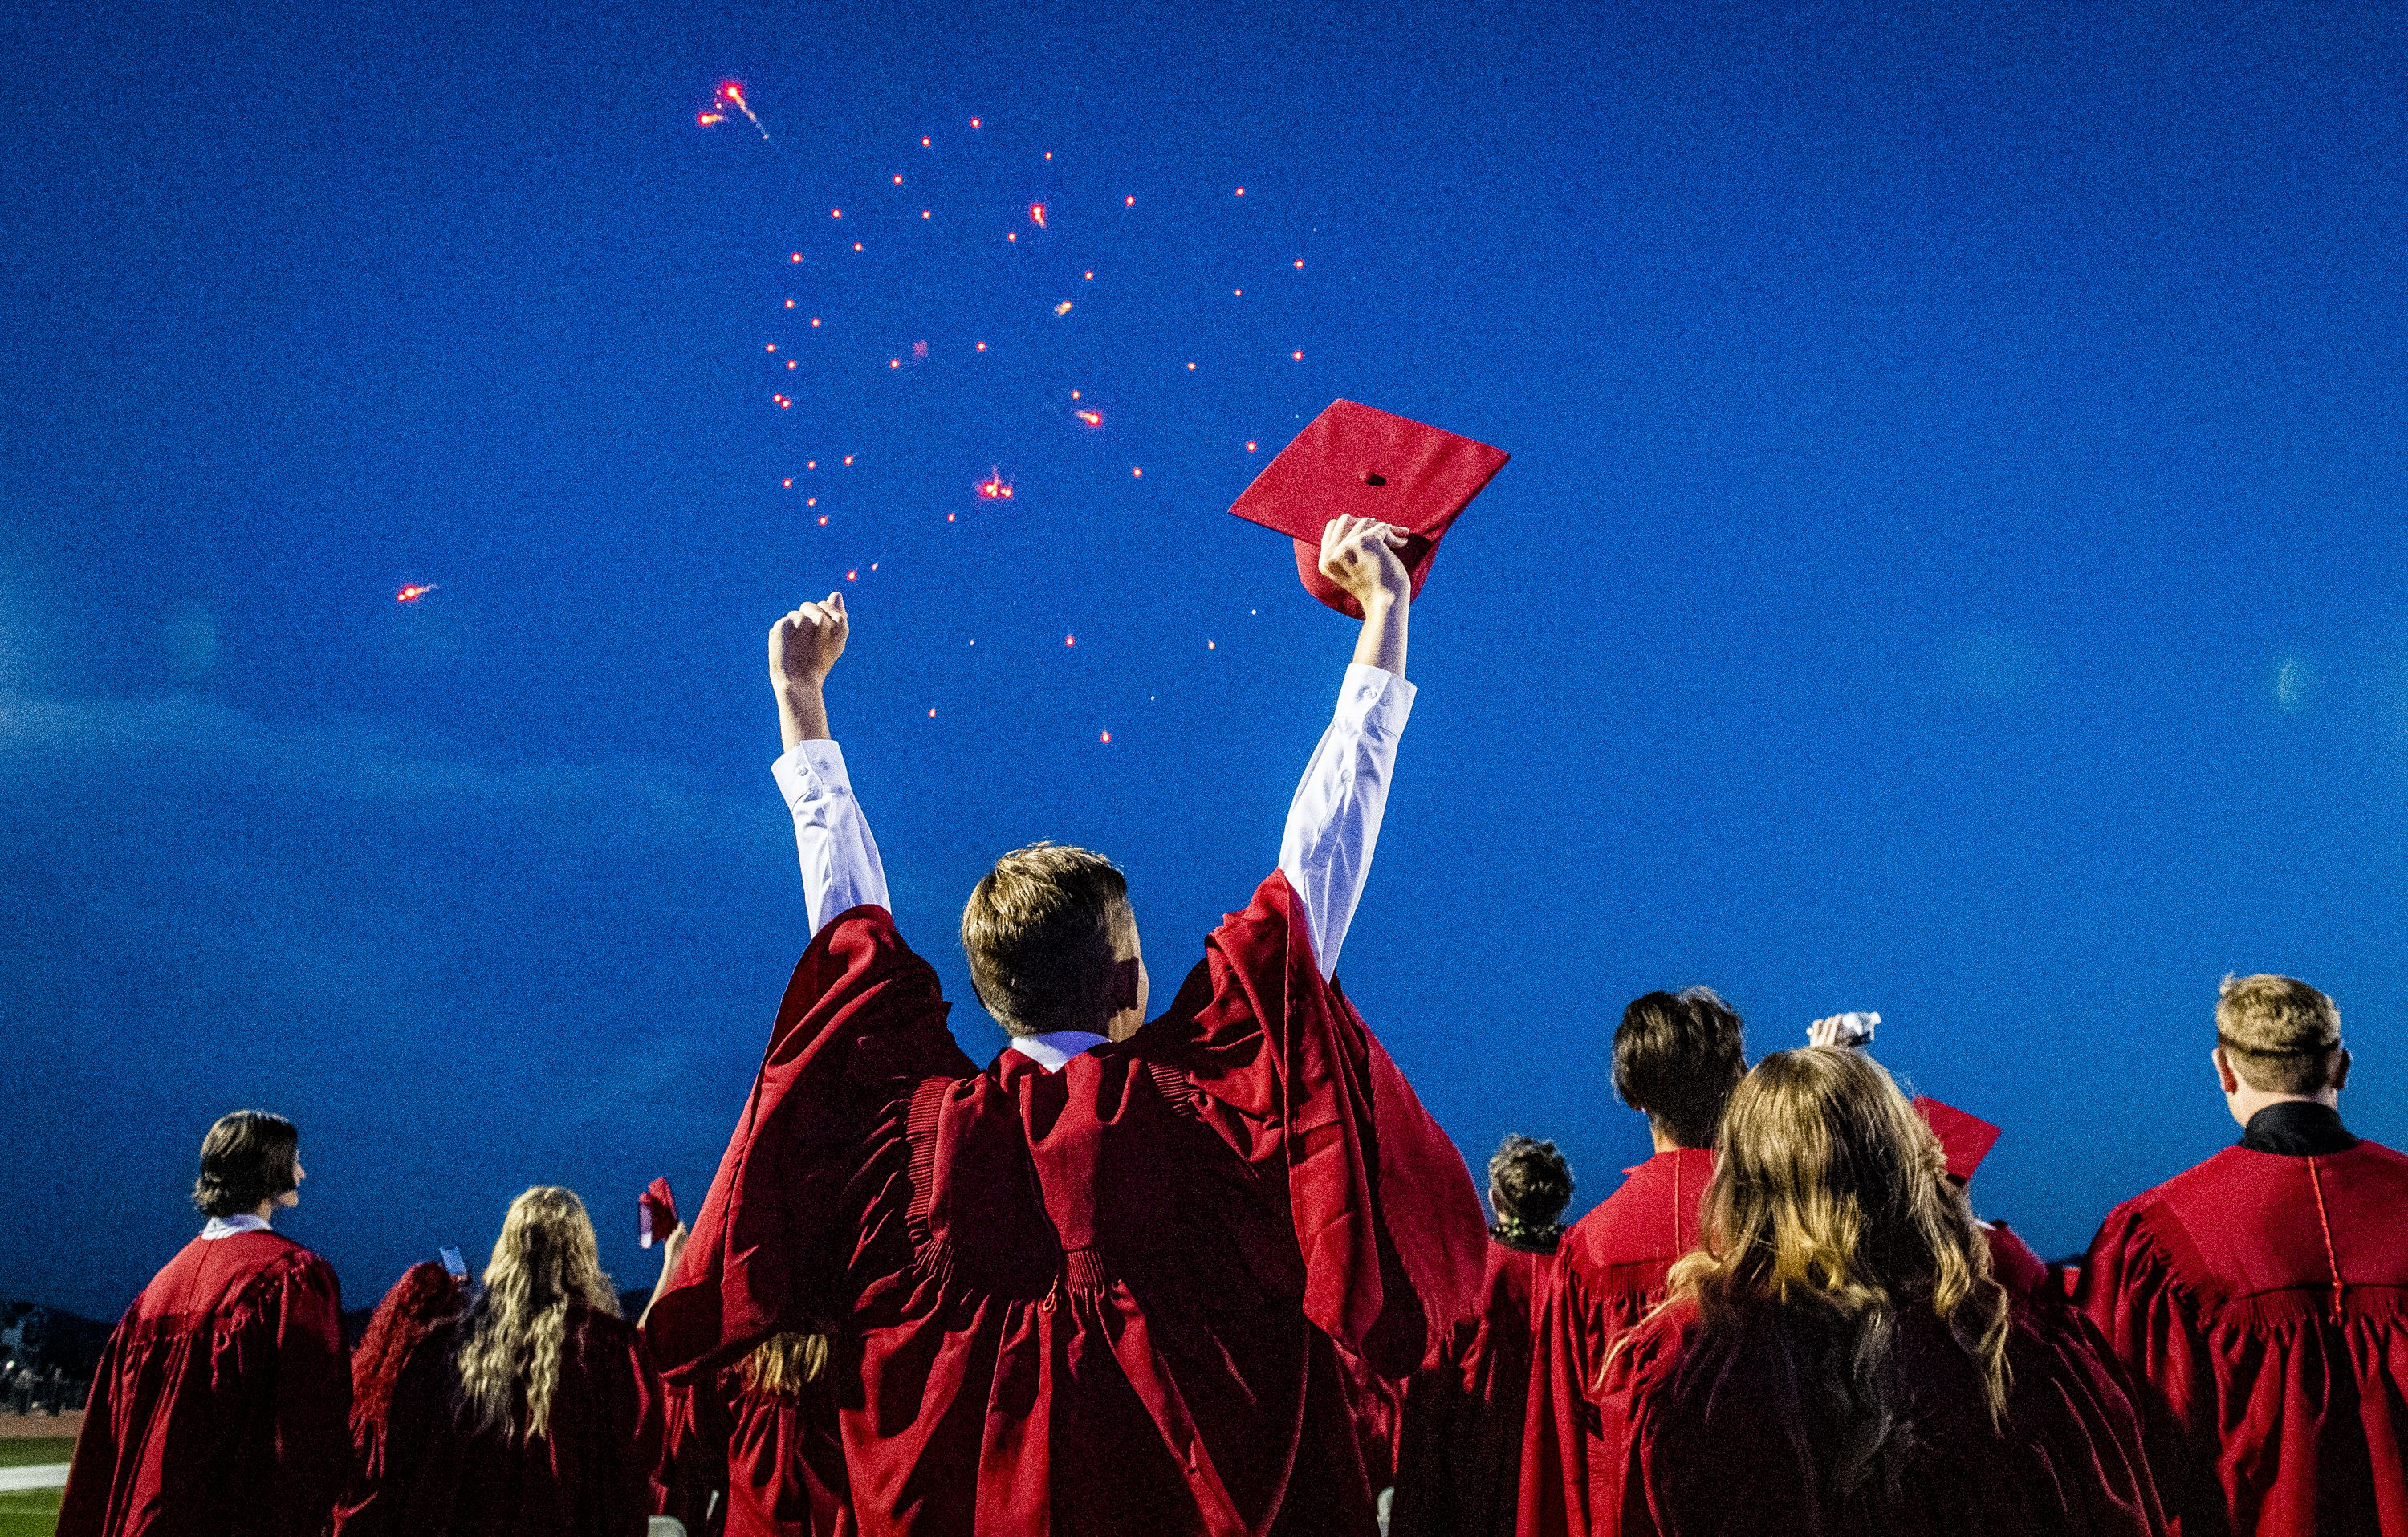 (Isaac Hale | Special to The Tribune) Graduates celebrate during the fireworks show at the end of Herriman High School's graduation ceremony held Thursday, June 3, 2021.